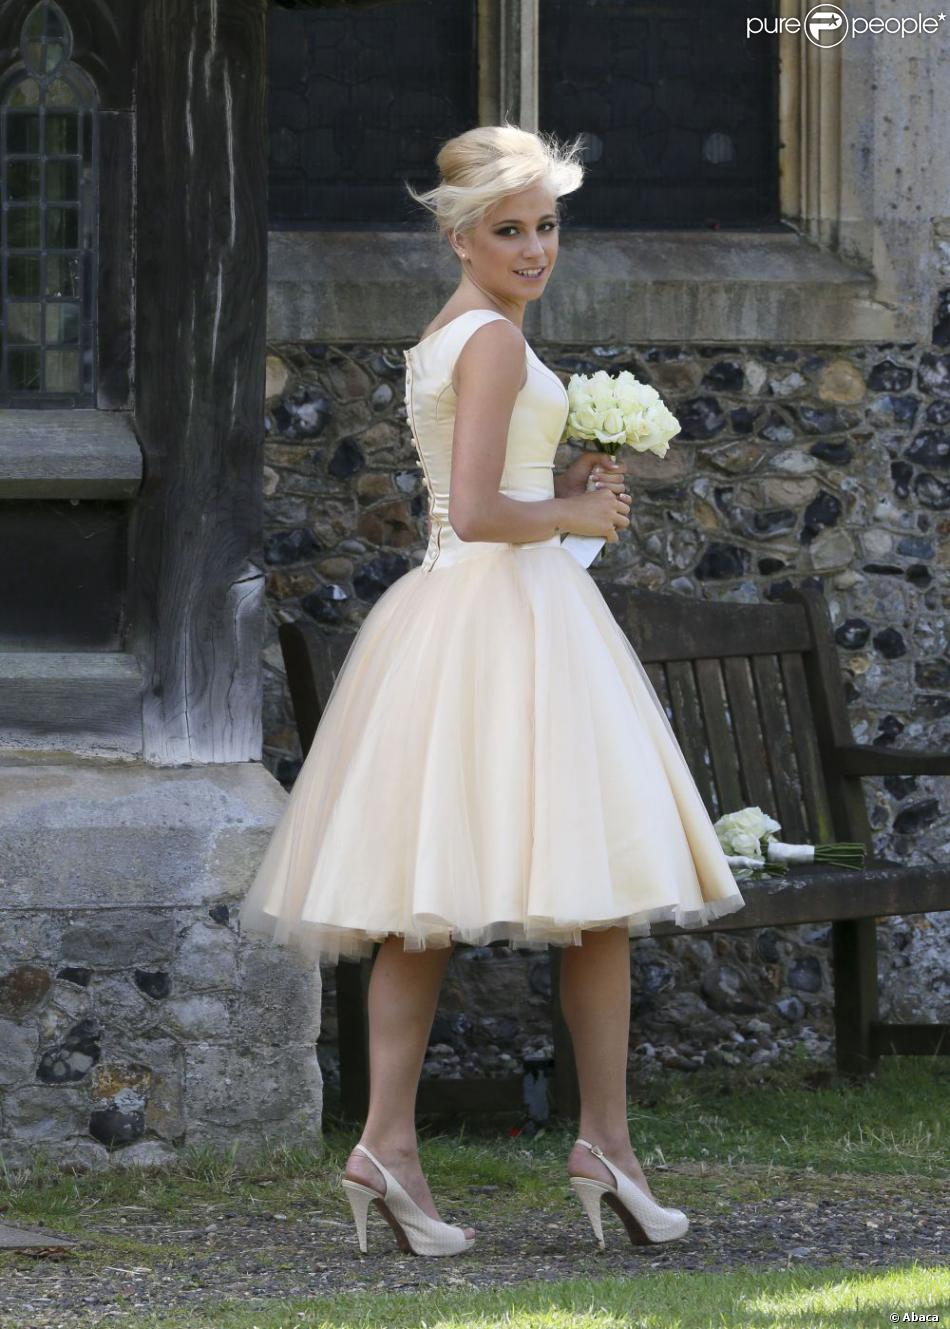 Pixie lott bridesmaid dress choice image braidsmaid dress pixie lott bridesmaid dress images braidsmaid dress cocktail pixie lott bridesmaid dress gallery braidsmaid dress cocktail ombrellifo Gallery